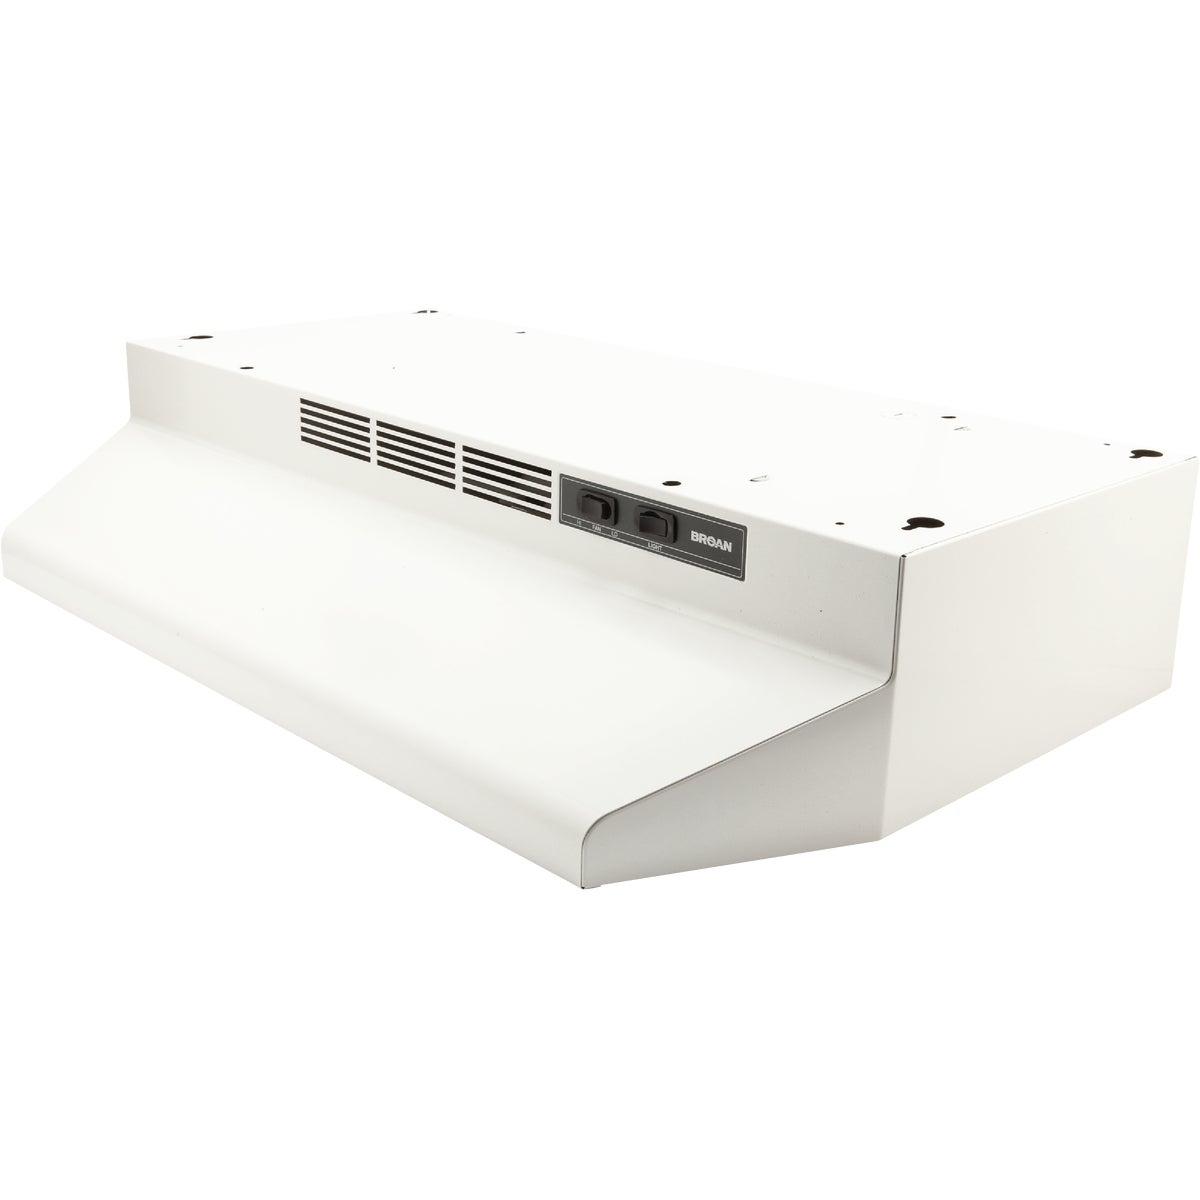 "30"" WHITE RANGE HOOD - 413001 by Broan Nutone"